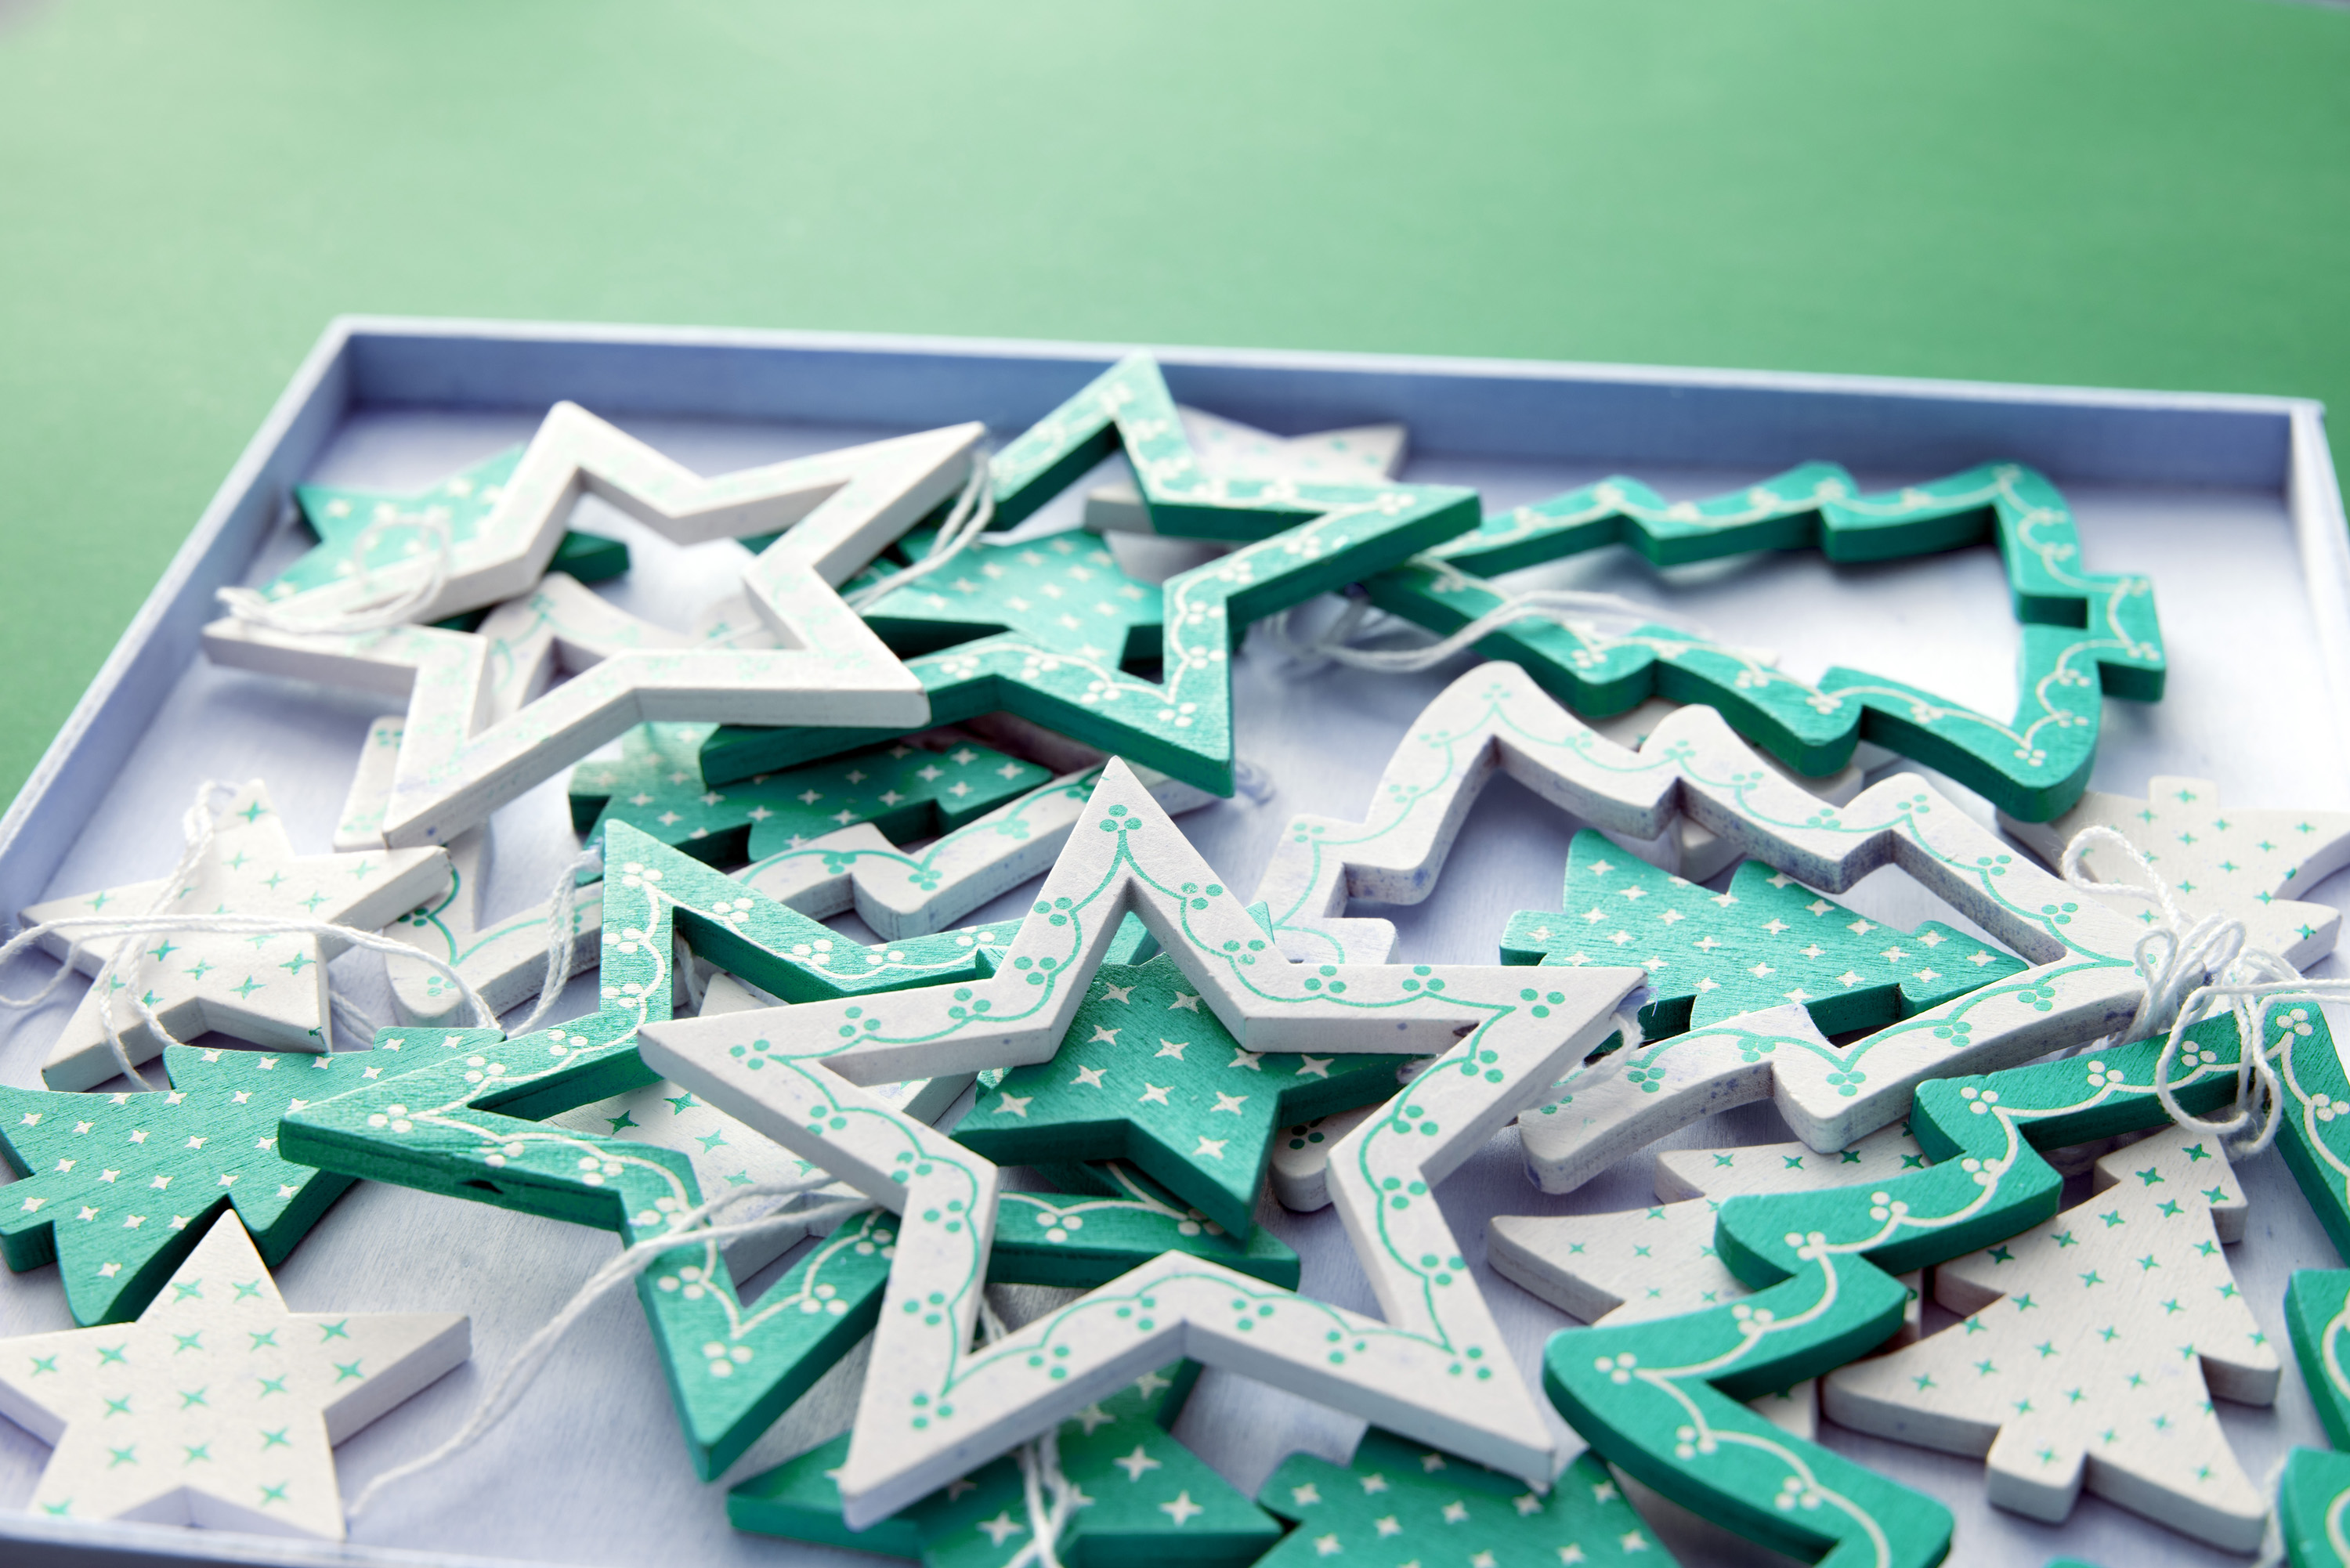 Tray of wooden green star and tree-shaped ornaments for hanging on the Christmas tree over a green background